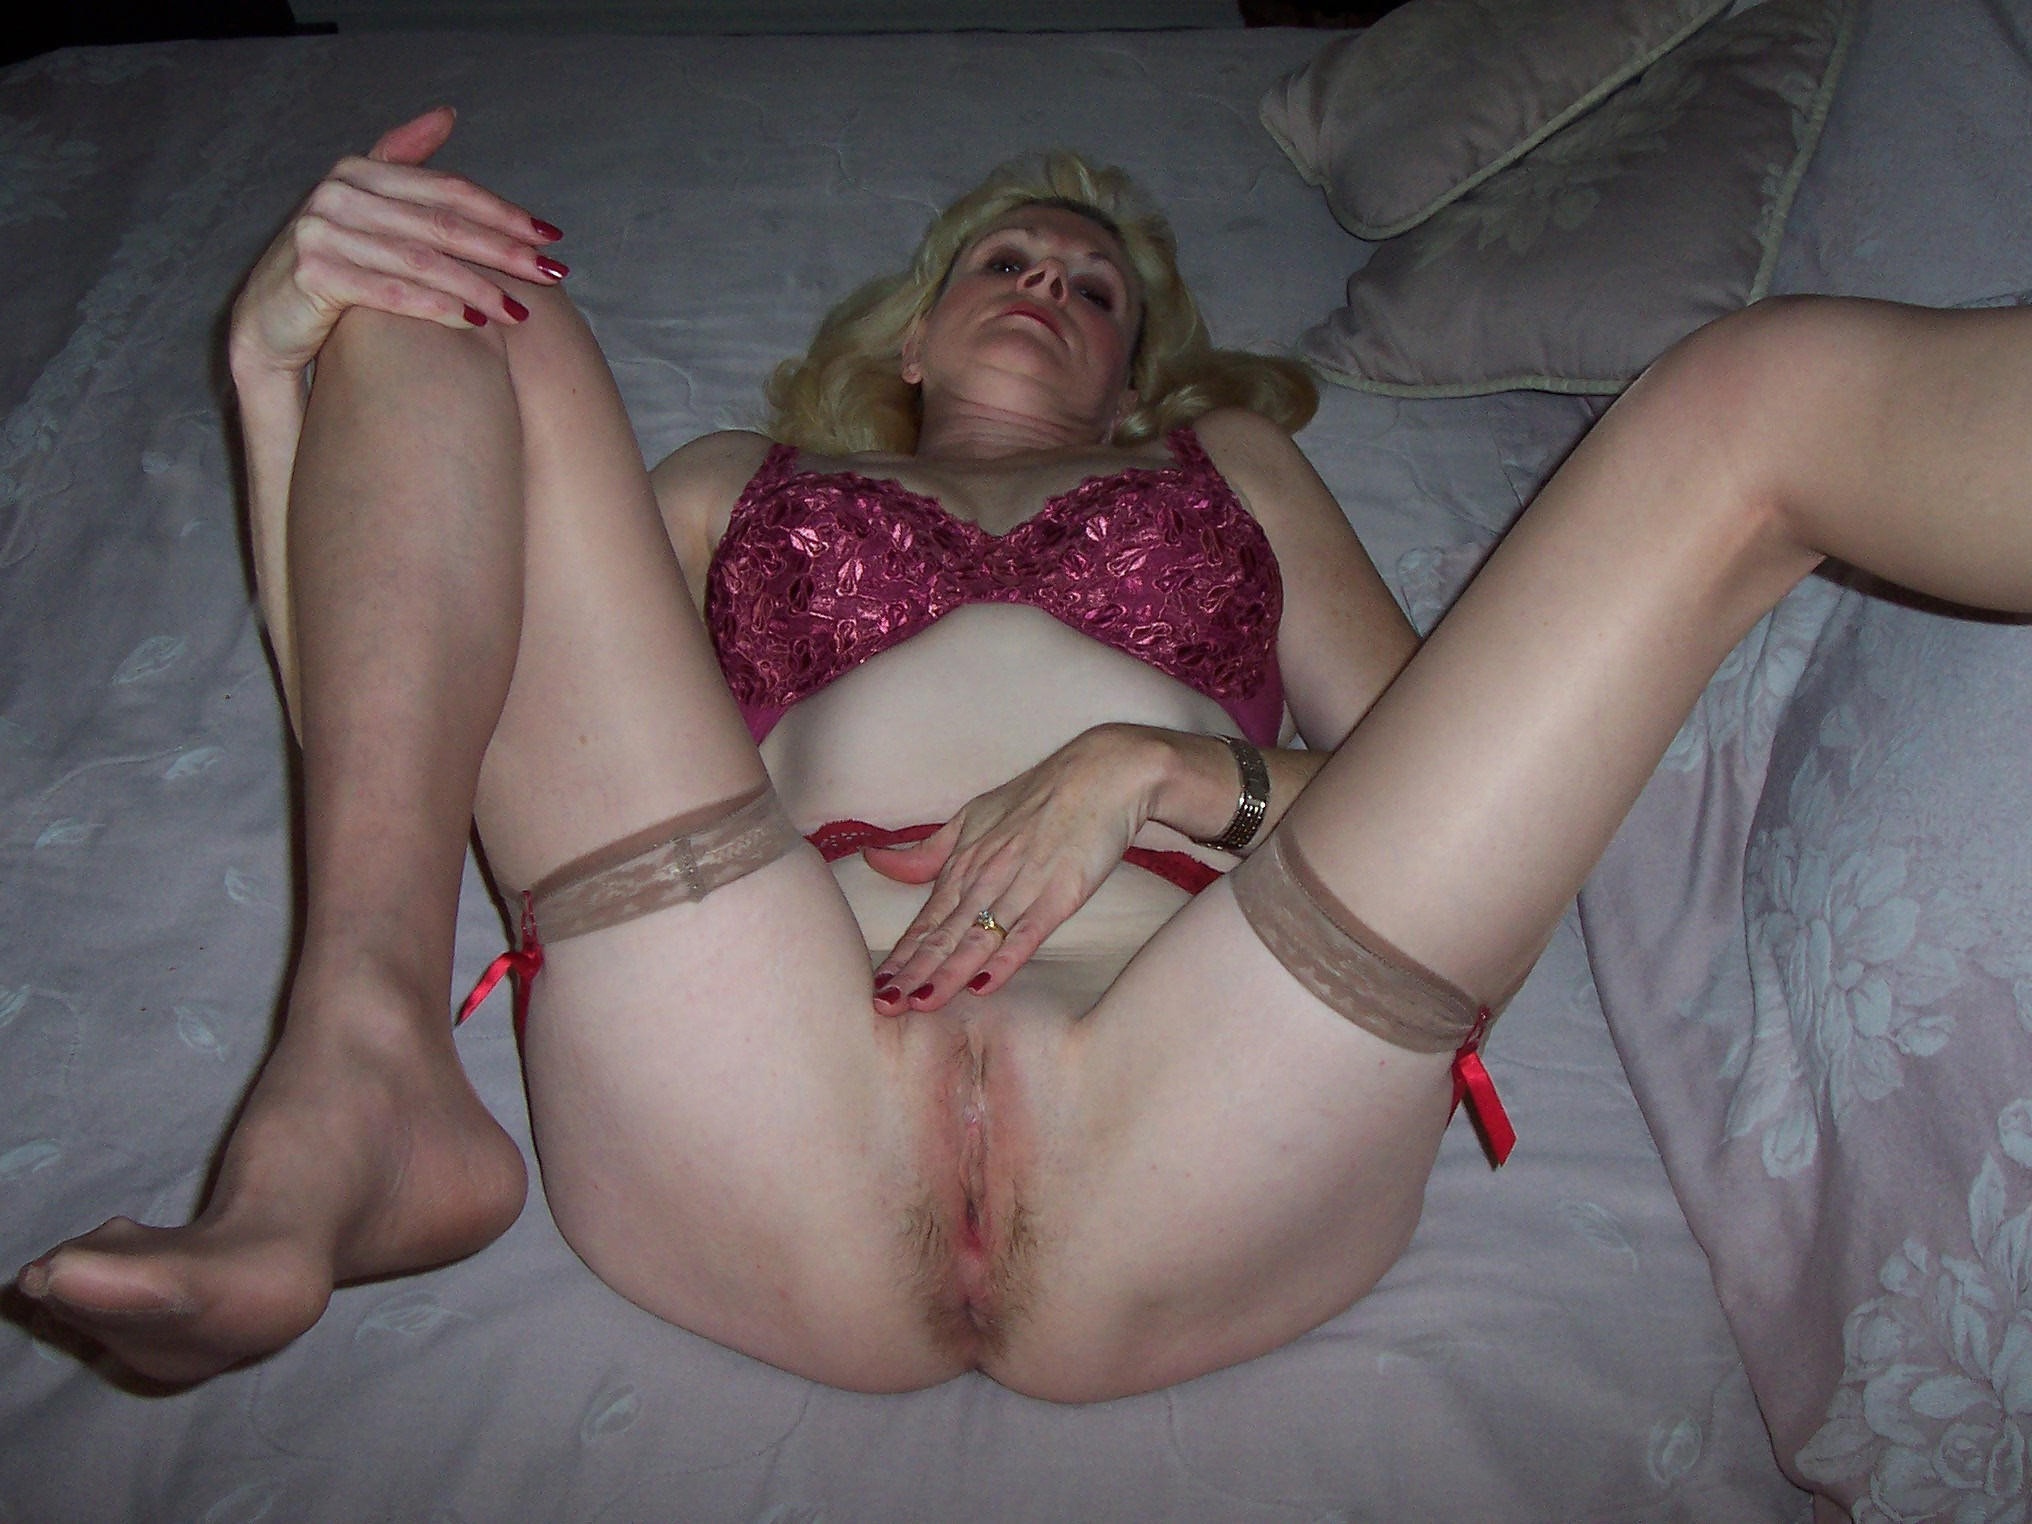 Ann a golden granny ready to get fucked in her sweet old hole